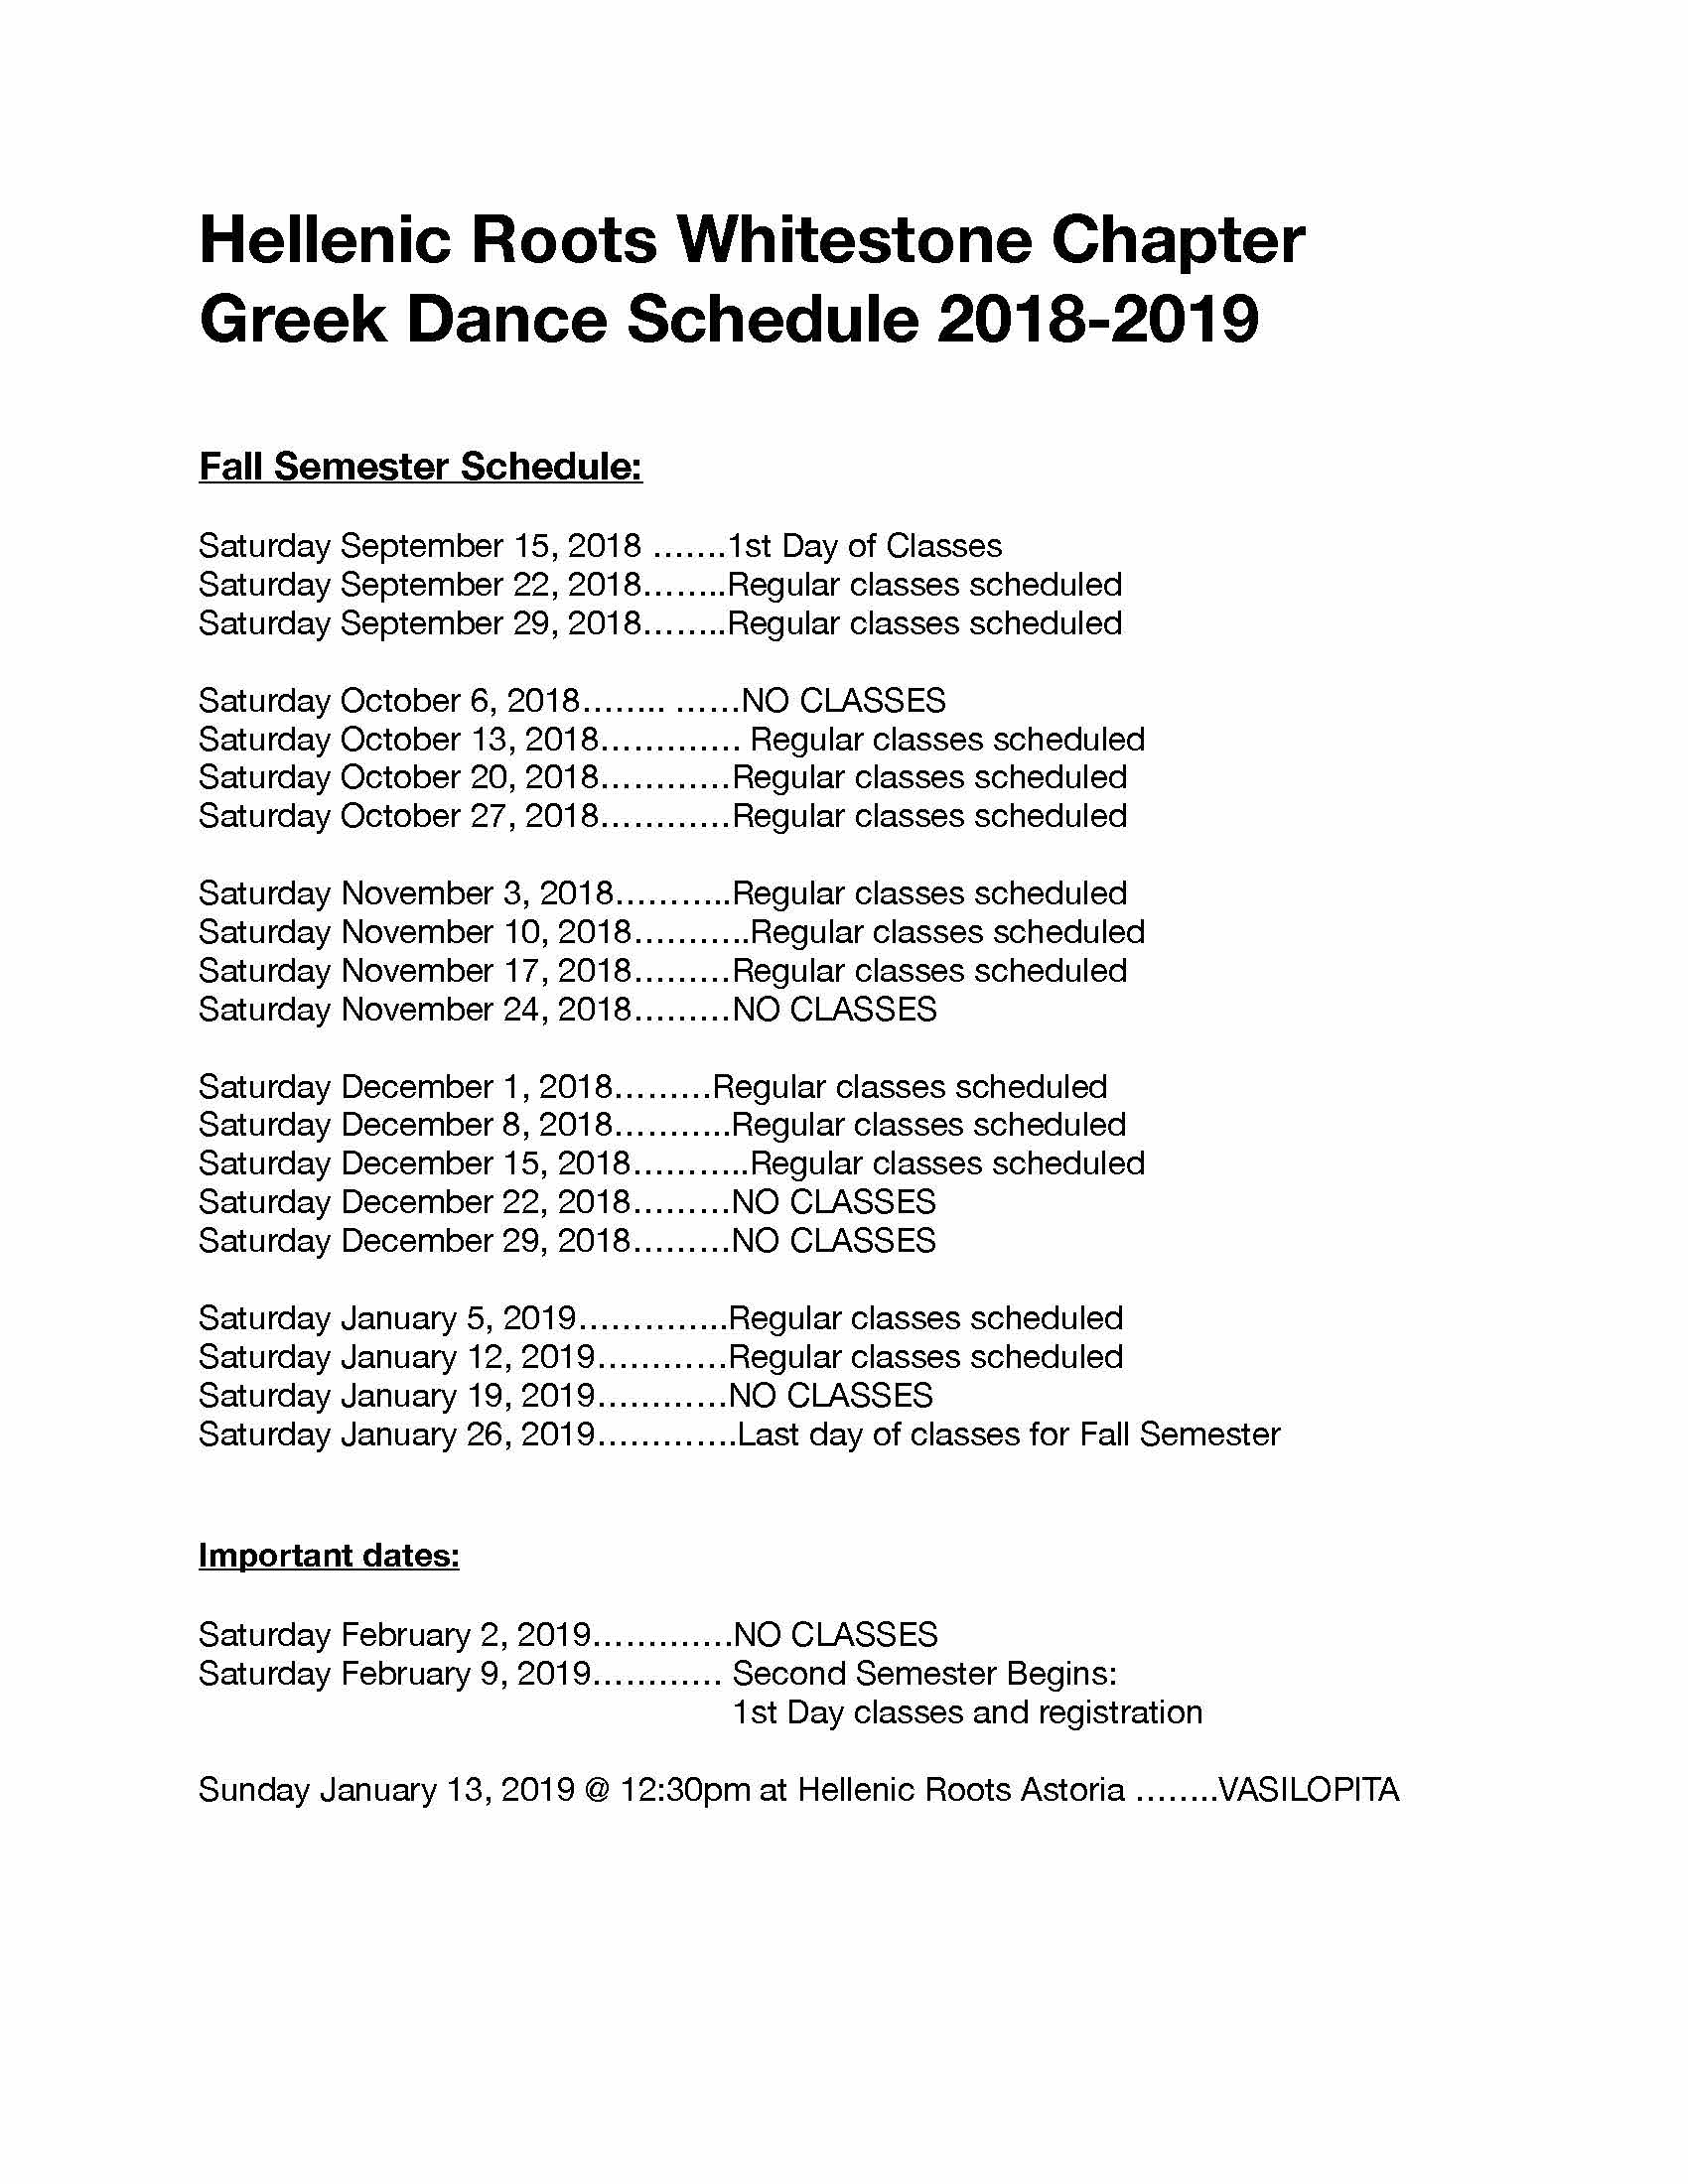 Hellenic Roots Whitestone Class Schedule Fall 2018